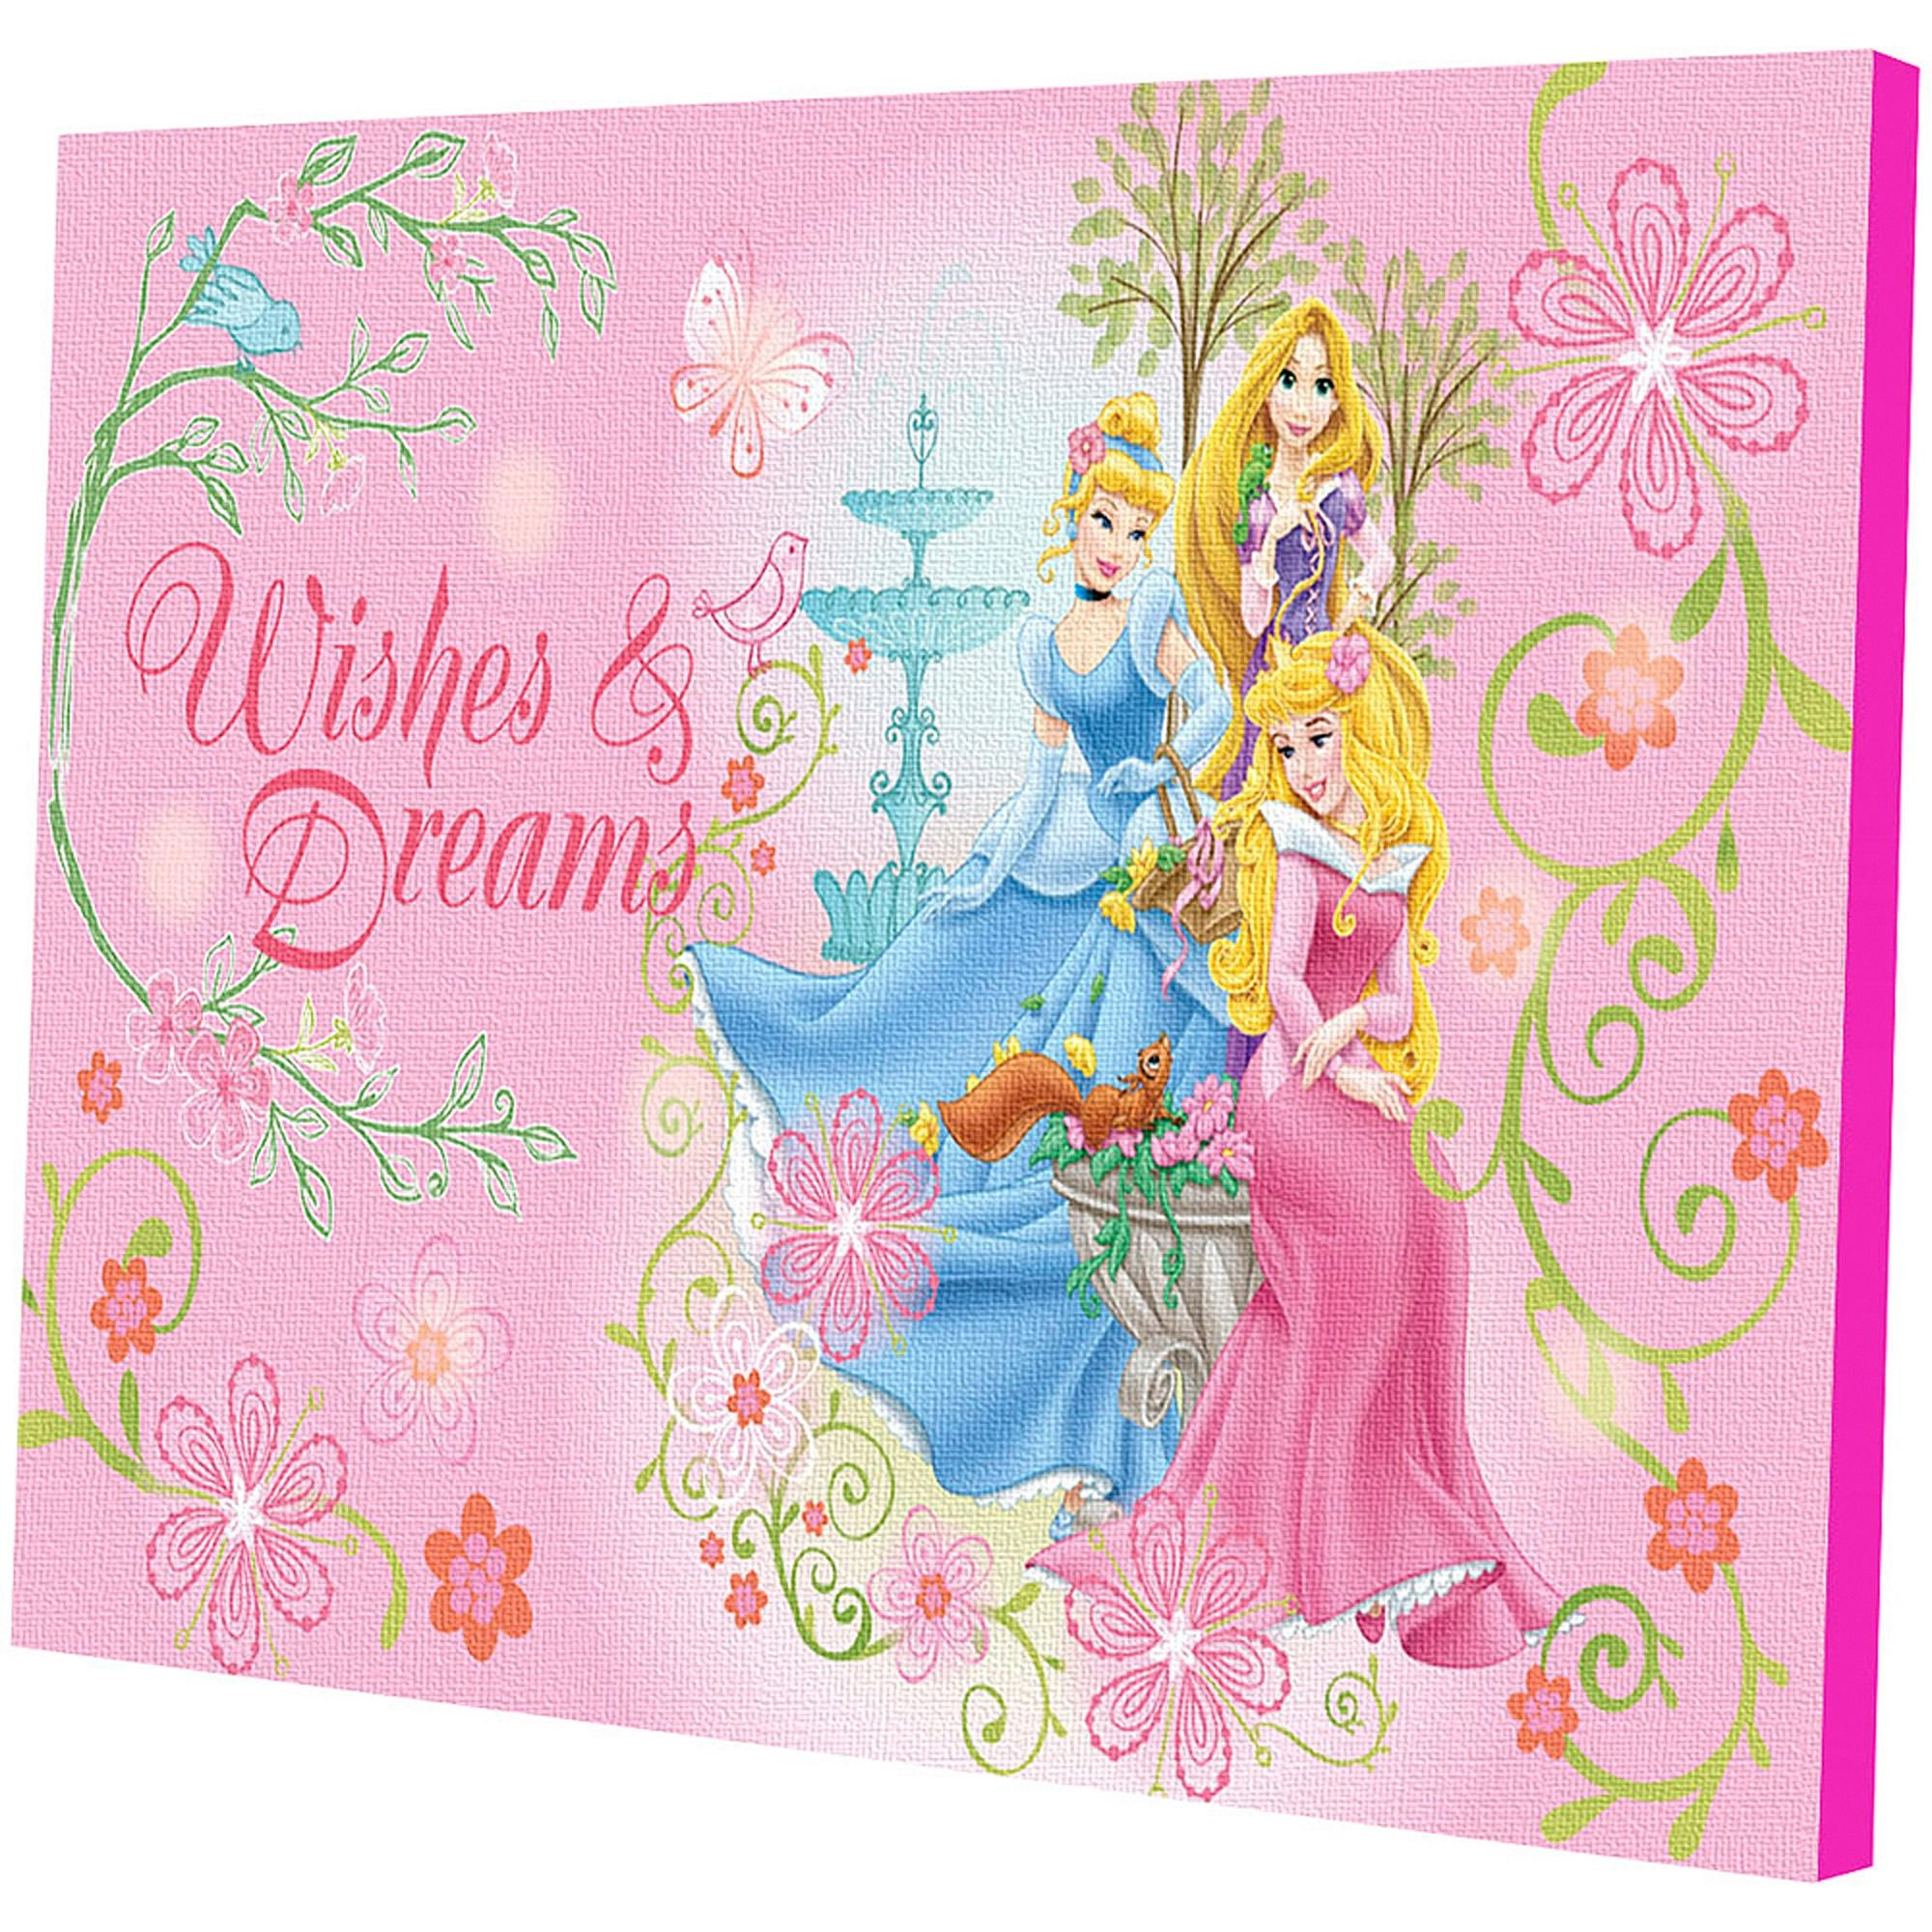 Disney Princess Led Light Up Canvas Wall Art – Walmart In Disney Princess Wall Art (Image 8 of 20)